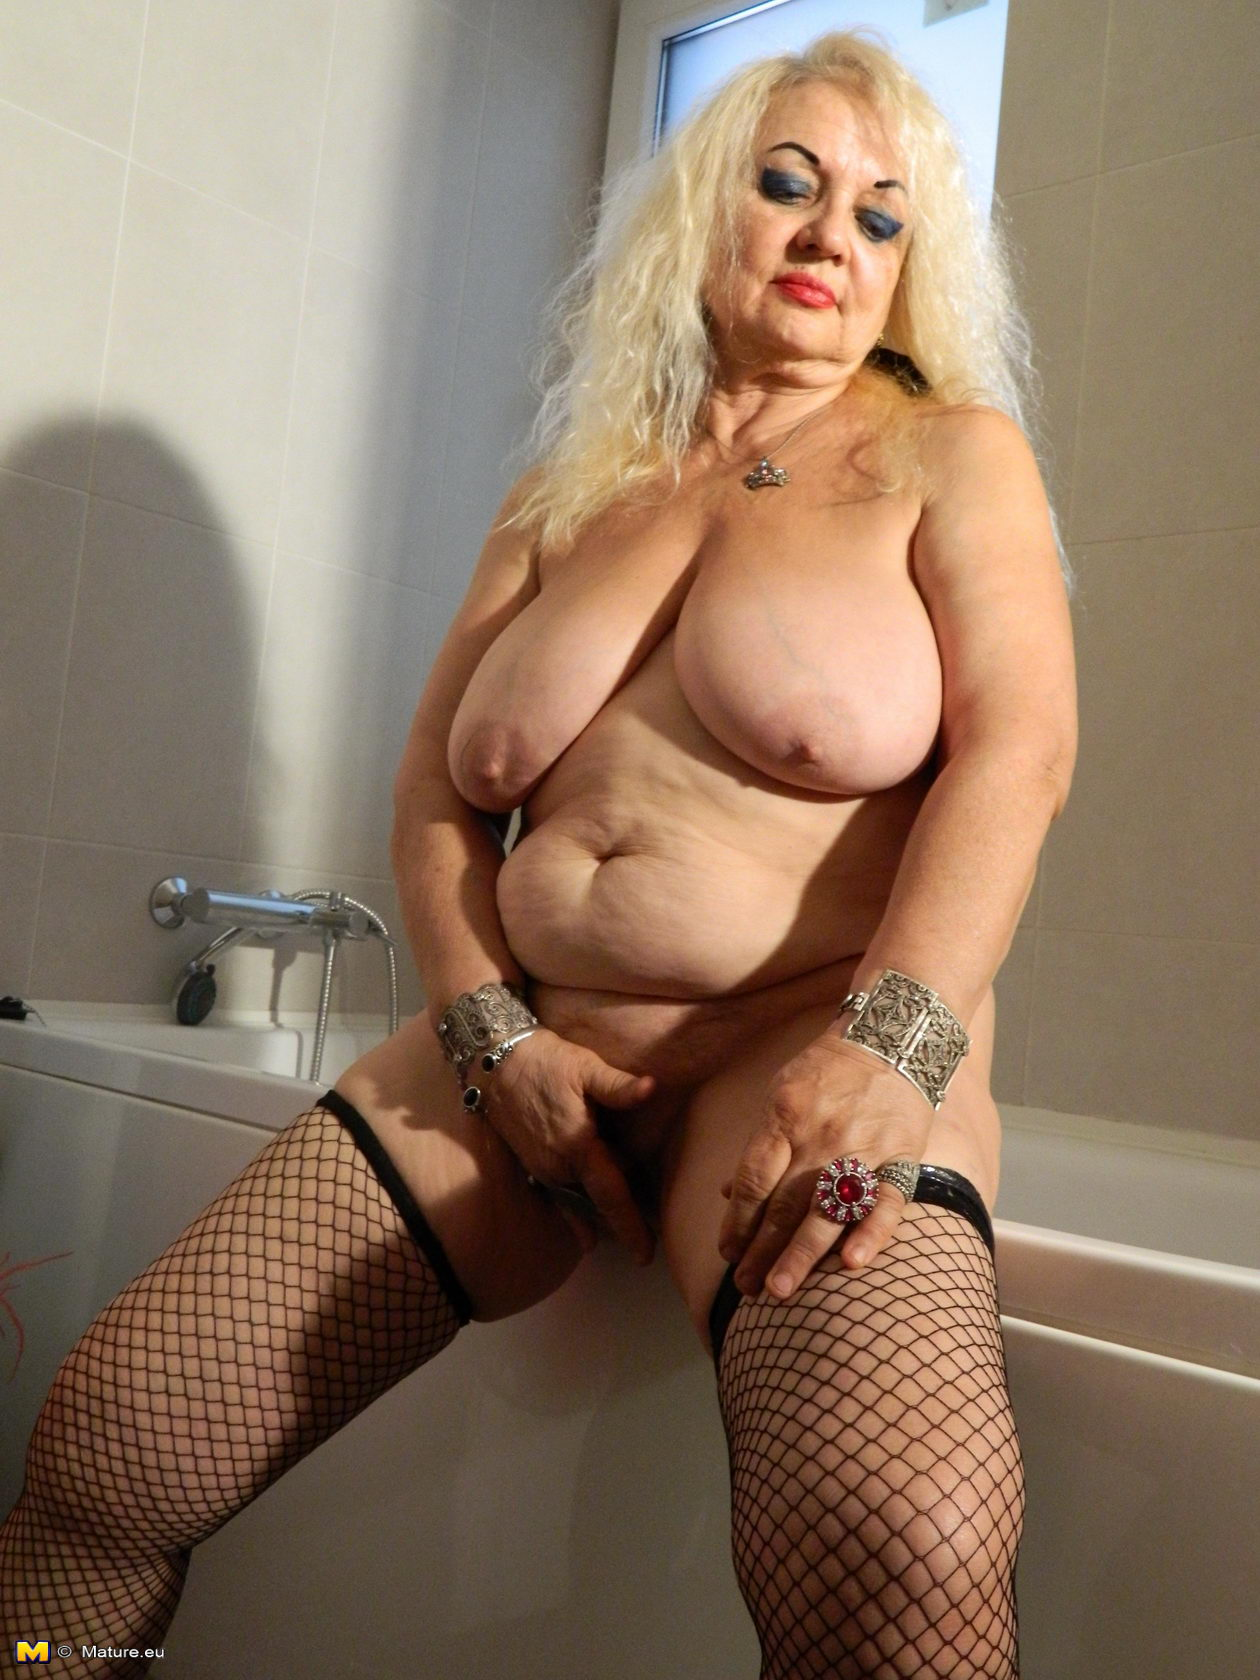 yes know site adult sites with age verification would you began